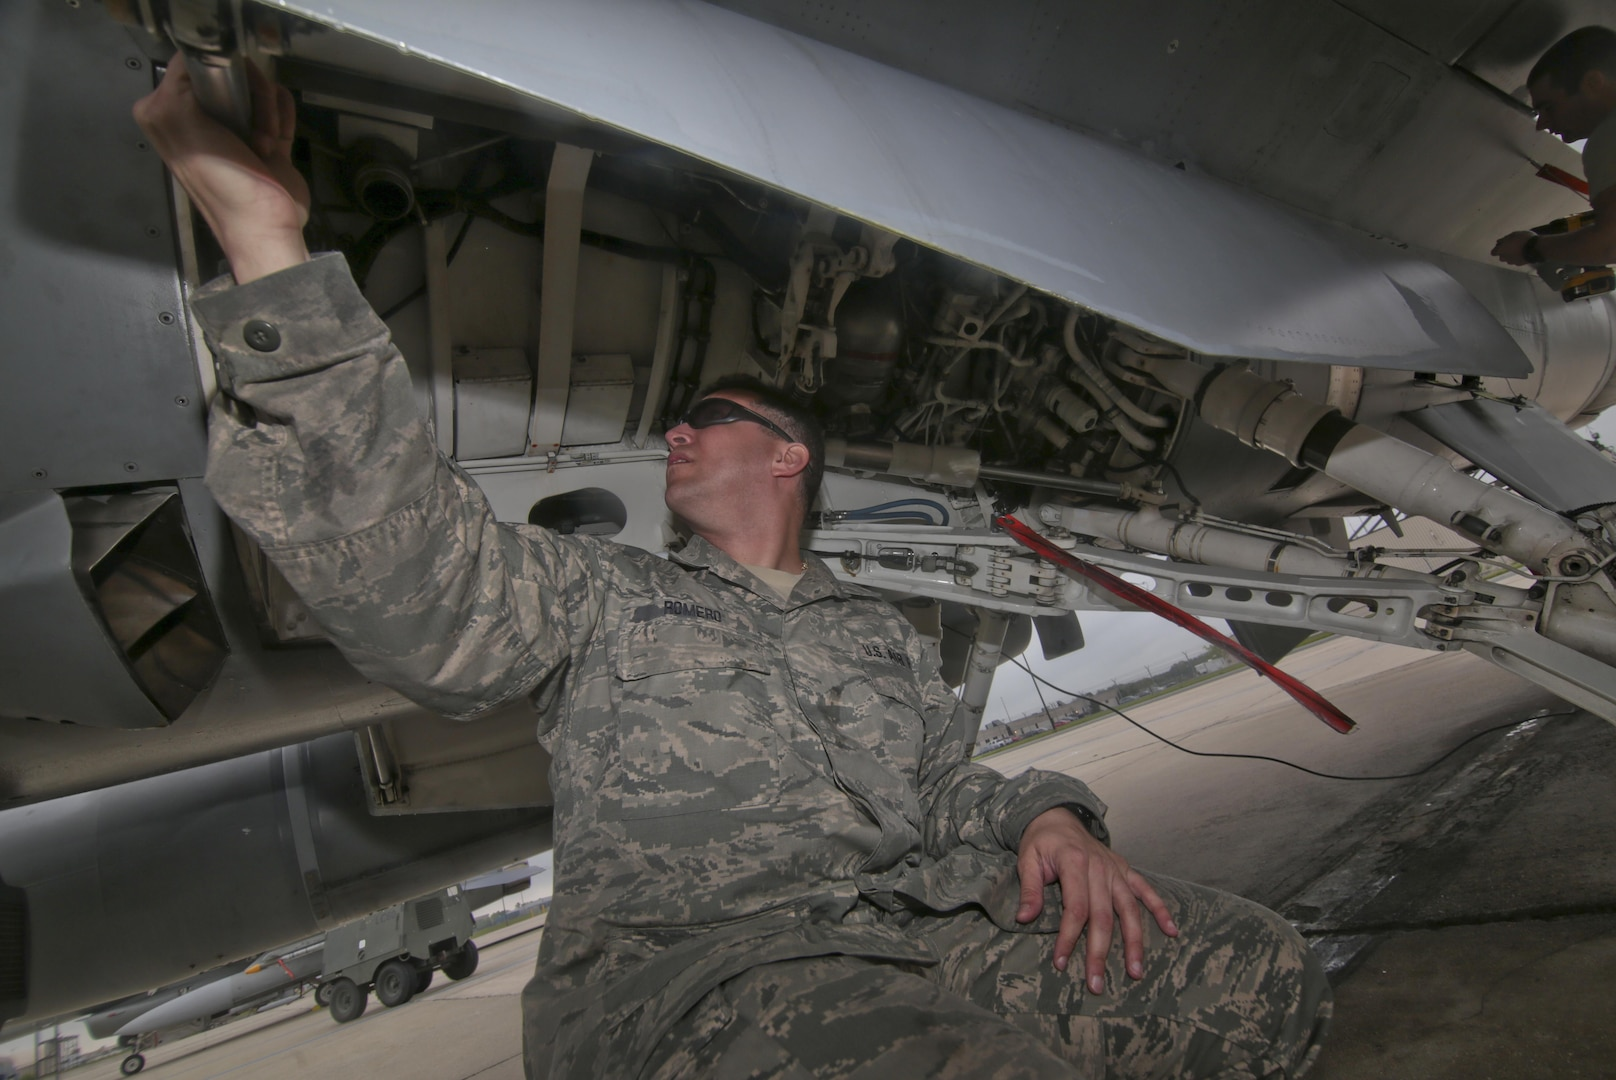 New Jersey Air National Guard Tech. Sgt. Sean Romero from the 177th Aircraft Maintenance Squadron looks over an F-16D Fighting Falcon during a three-day Aeropsace Control Alert CrossTell live-fly training exercise at Atlantic City Air National Guard Base, N.J., May 23, 2017. Representatives from Air National Guard fighter wings, Civil Air Patrol, and U.S. Coast Guard rotary-wing air intercept units will conduct daily sorties from May 23-25 to hone their skills with tactical-level air-intercept procedures. (U.S. Air National Guard photo by Master Sgt. Matt Hecht/Released)